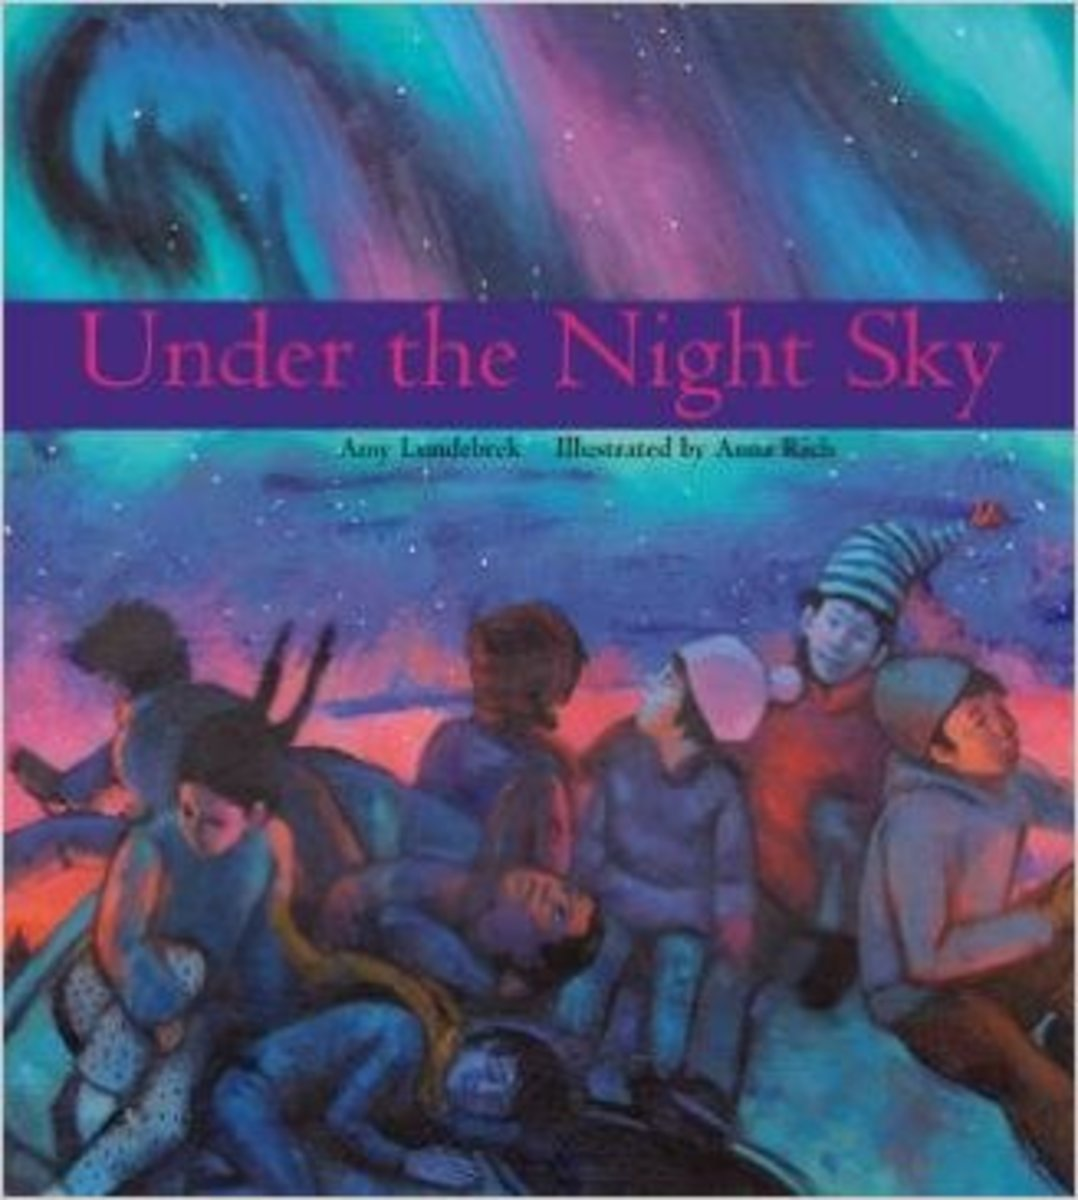 Under the Night Sky by Amy Lundebrek  - Image is from amazon.com